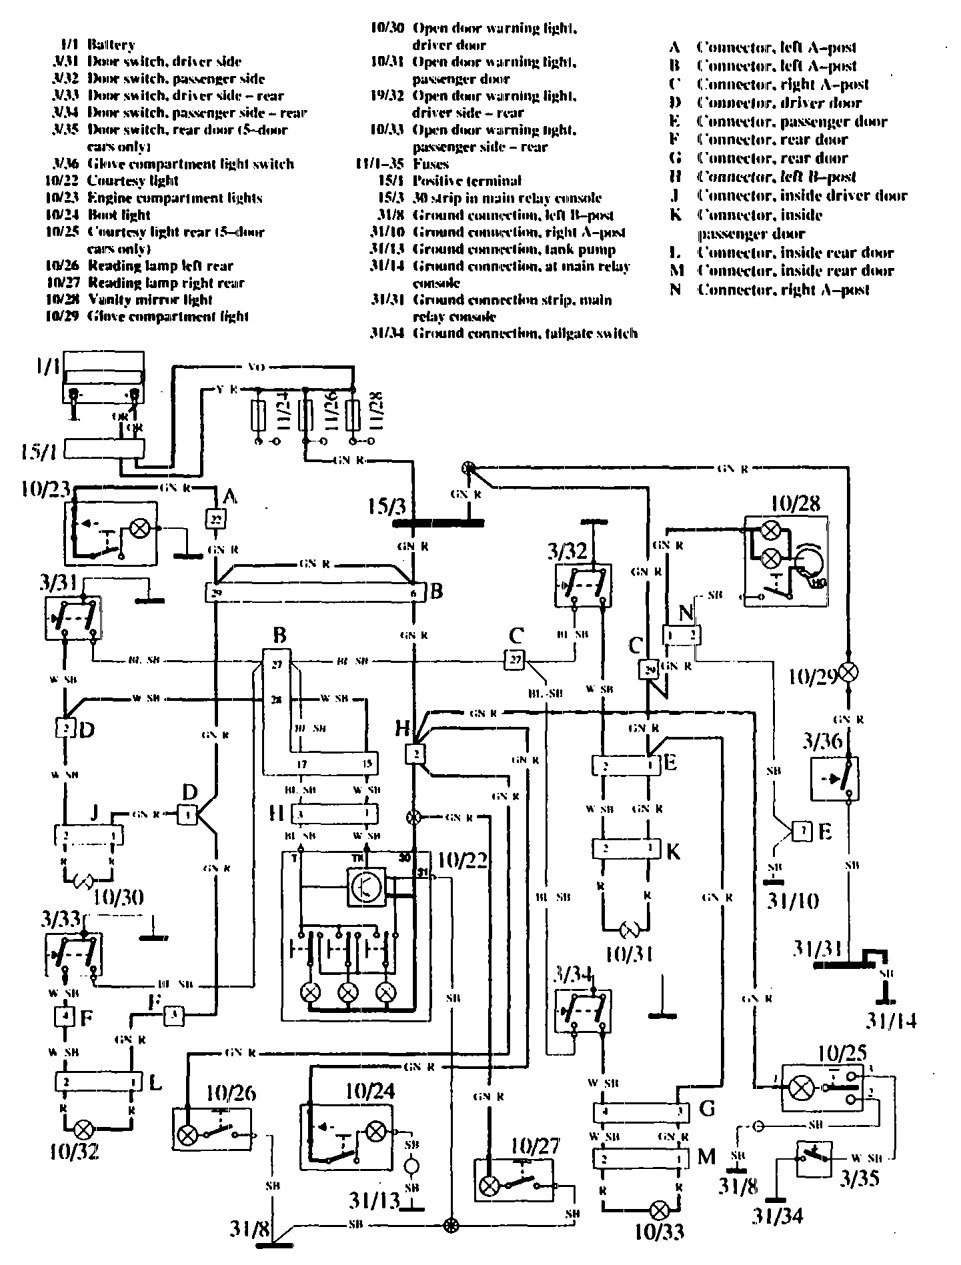 Volvo 760 1990 Wiring Diagrams Interior Lighting Carknowledge 2011 Tahoe Dome Light Schematic Diagram